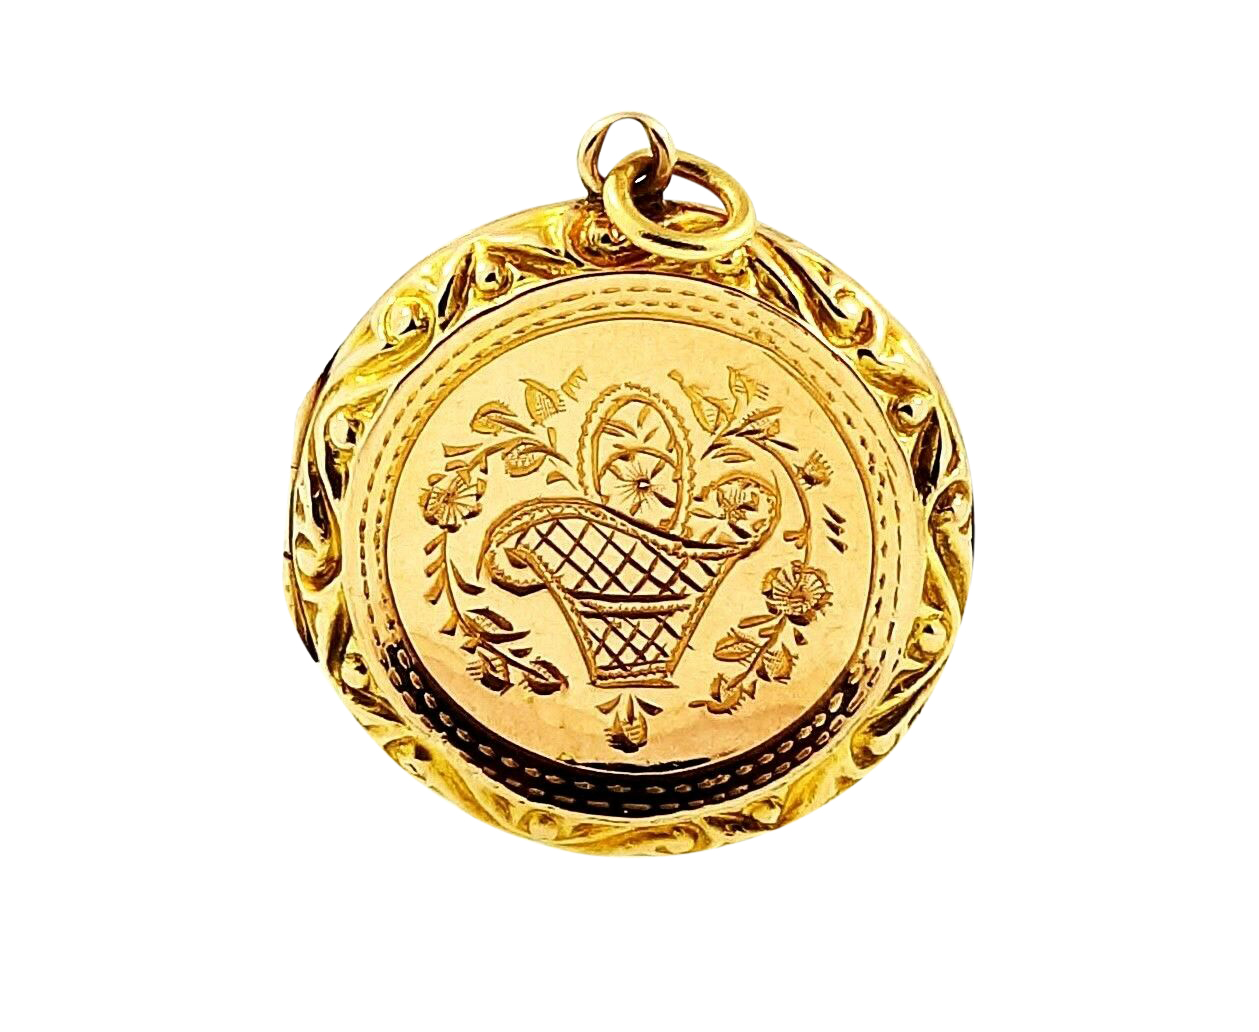 Antique 9carat Yellow Gold Circular Locket (22mm Diameter. Edwardian Pendant. Jewellery Rings Online14k Gold Lockets. Ball Official Standard Watches. Camellia Rings. 9 Carat Engagement Rings. Dual Bands. Thick Rings. Square Cut Rings